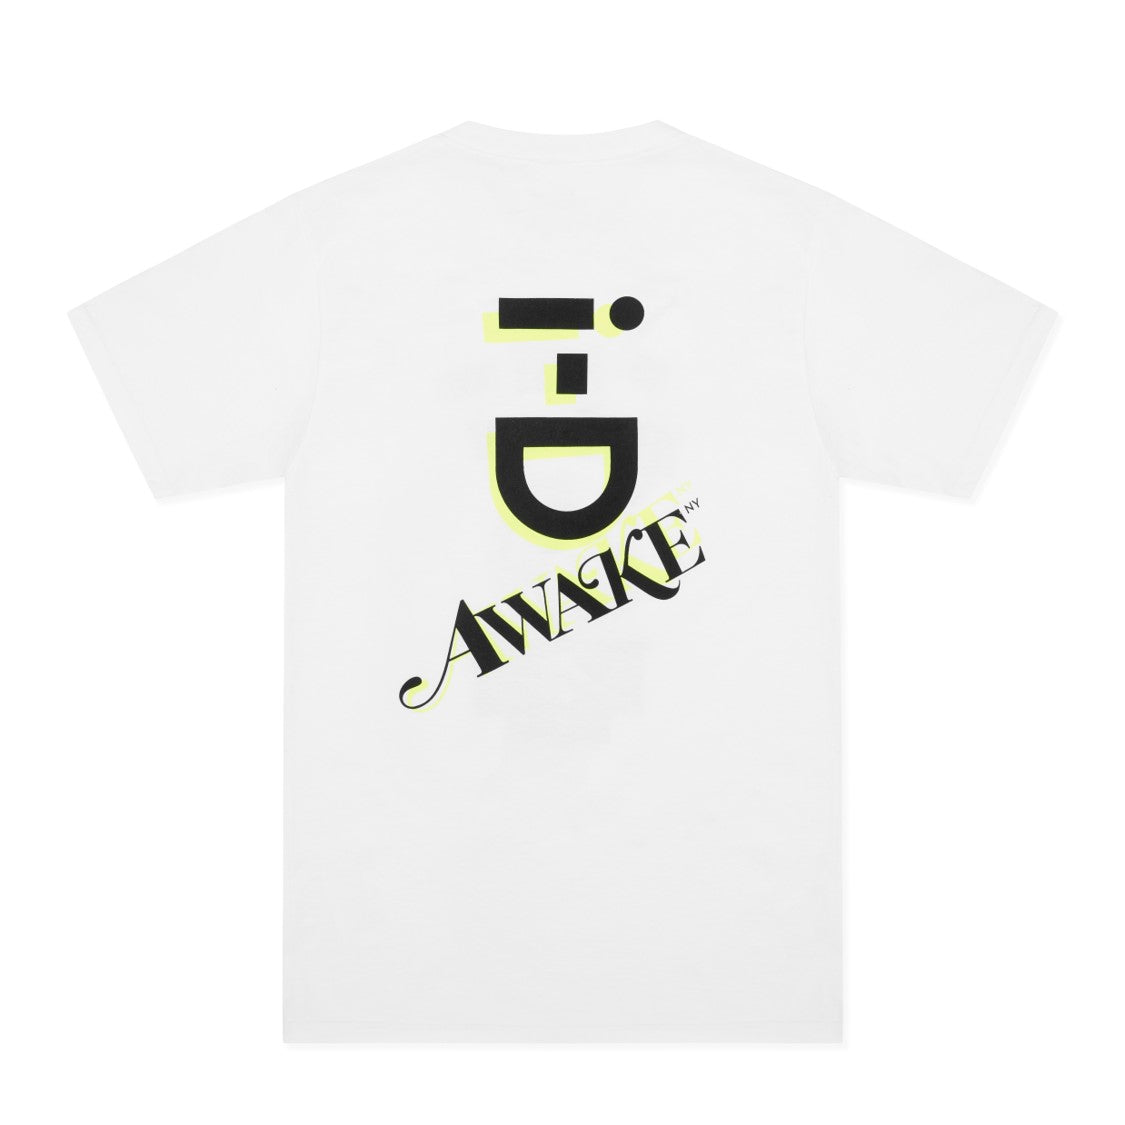 i-D x AWAKE the post truth truth issue tee